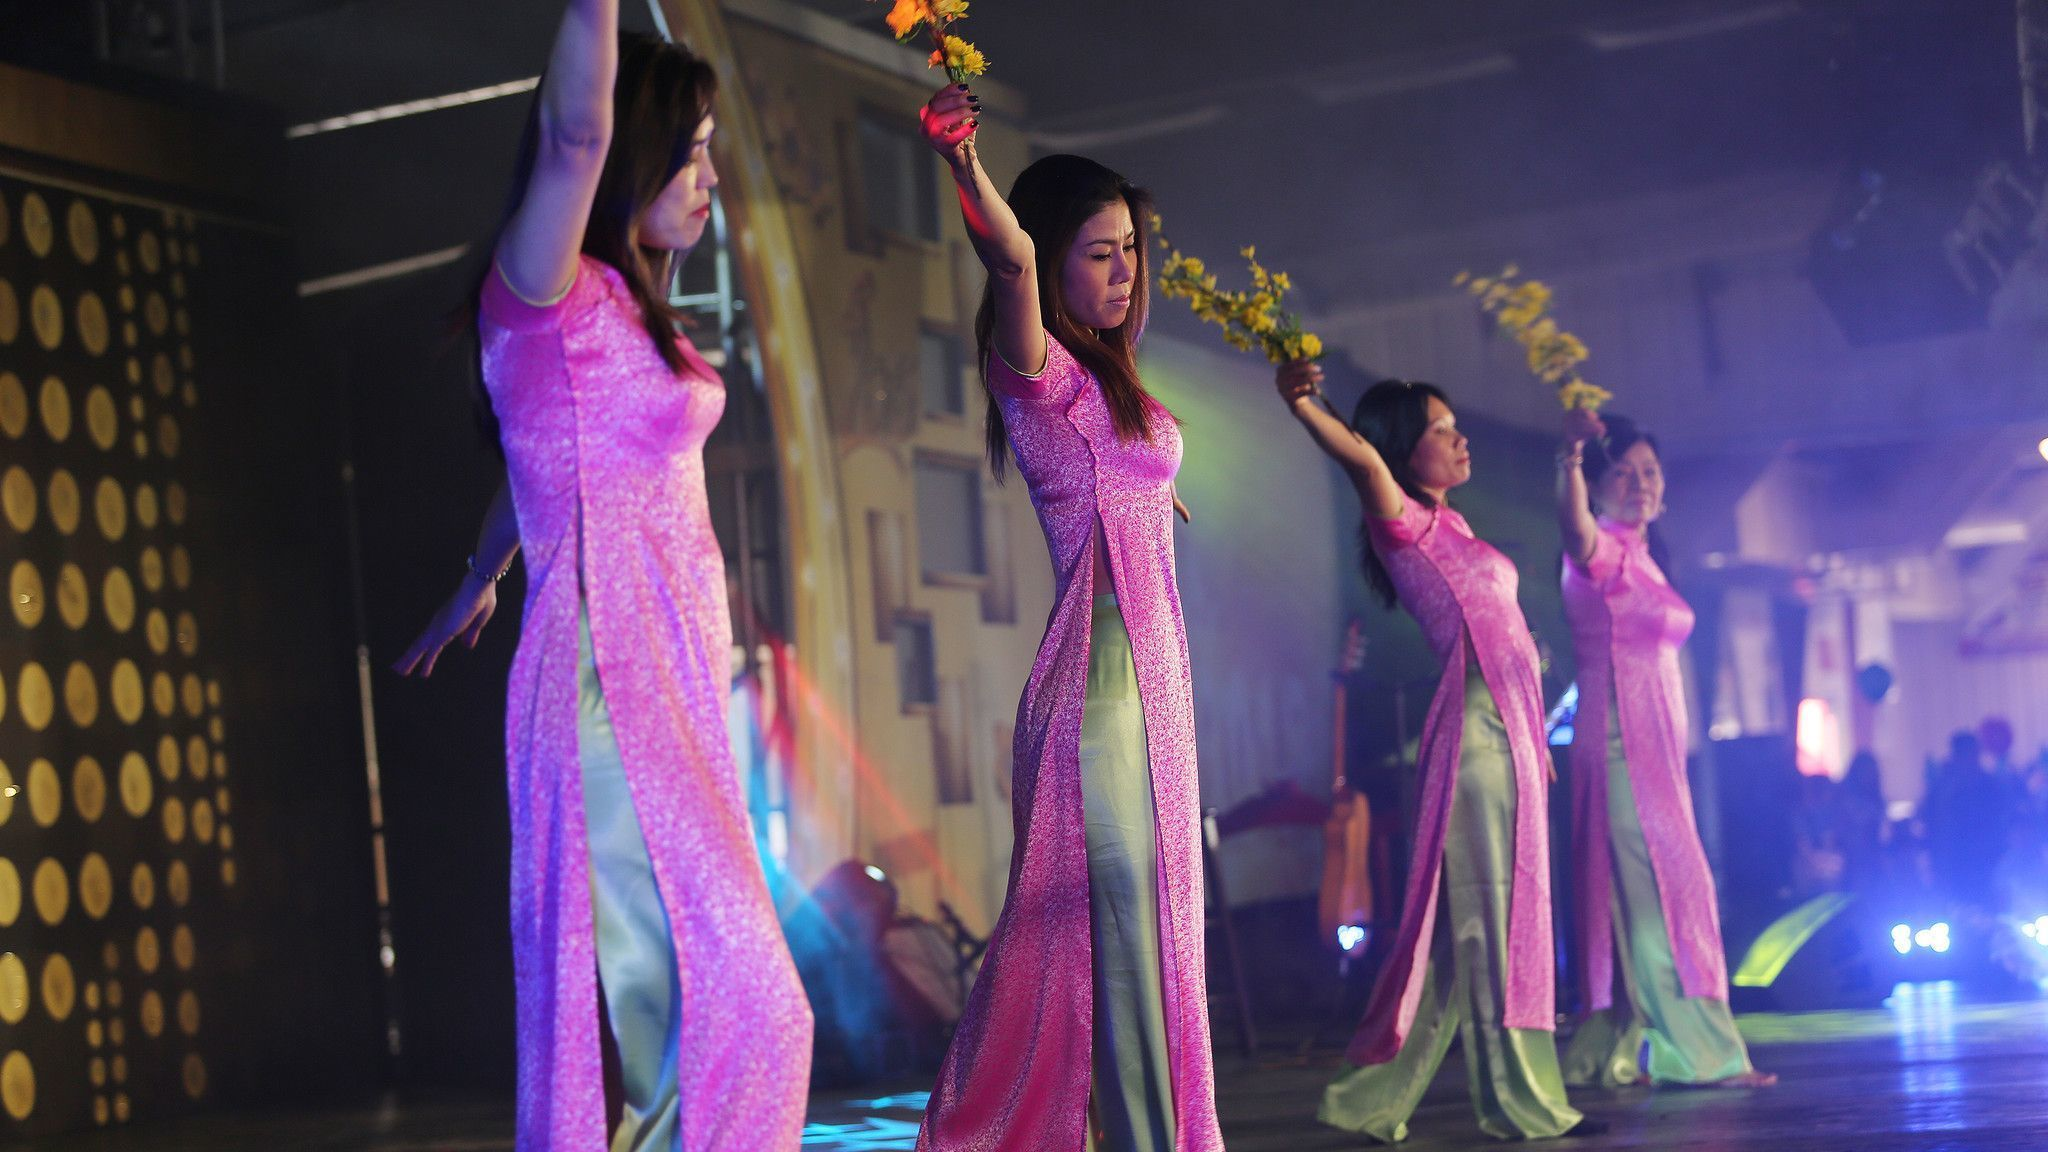 Members of Lac Hong, a Virtnamese cultural group, perform a New Year dance . The Vietnamese communit